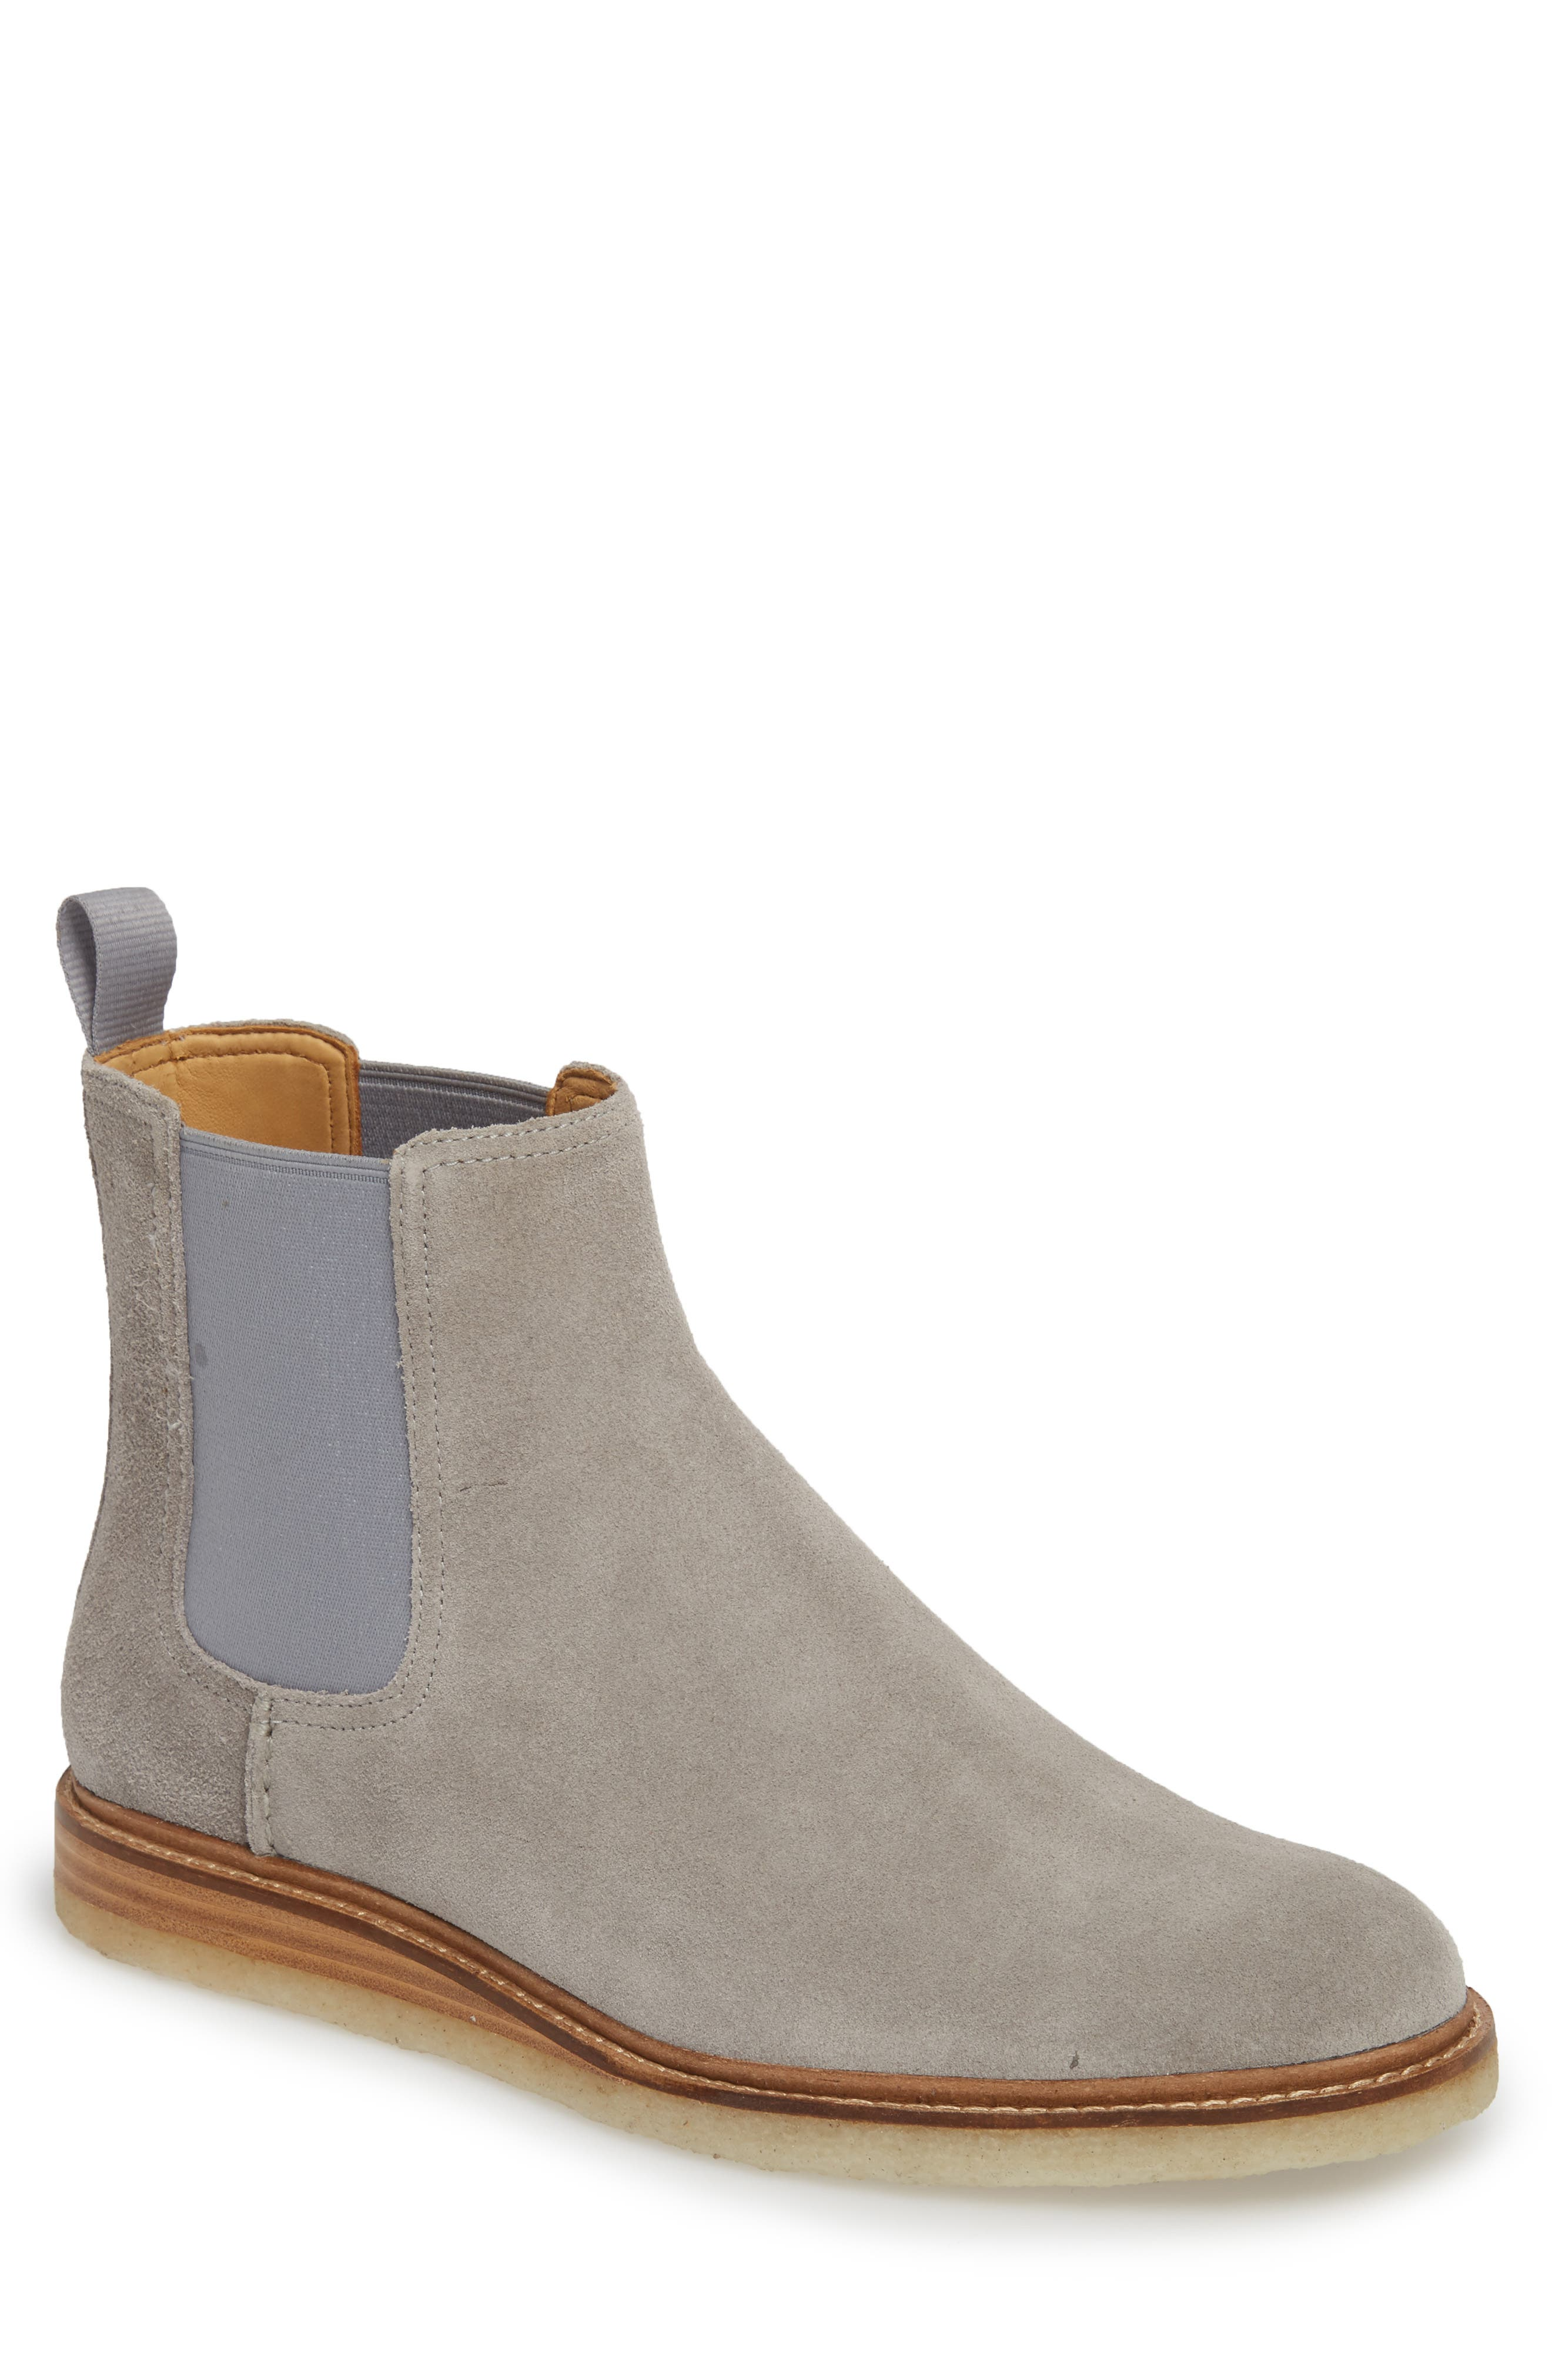 Gold Cup Crepe Chelsea Boot,                         Main,                         color, Grey Leather/ Suede